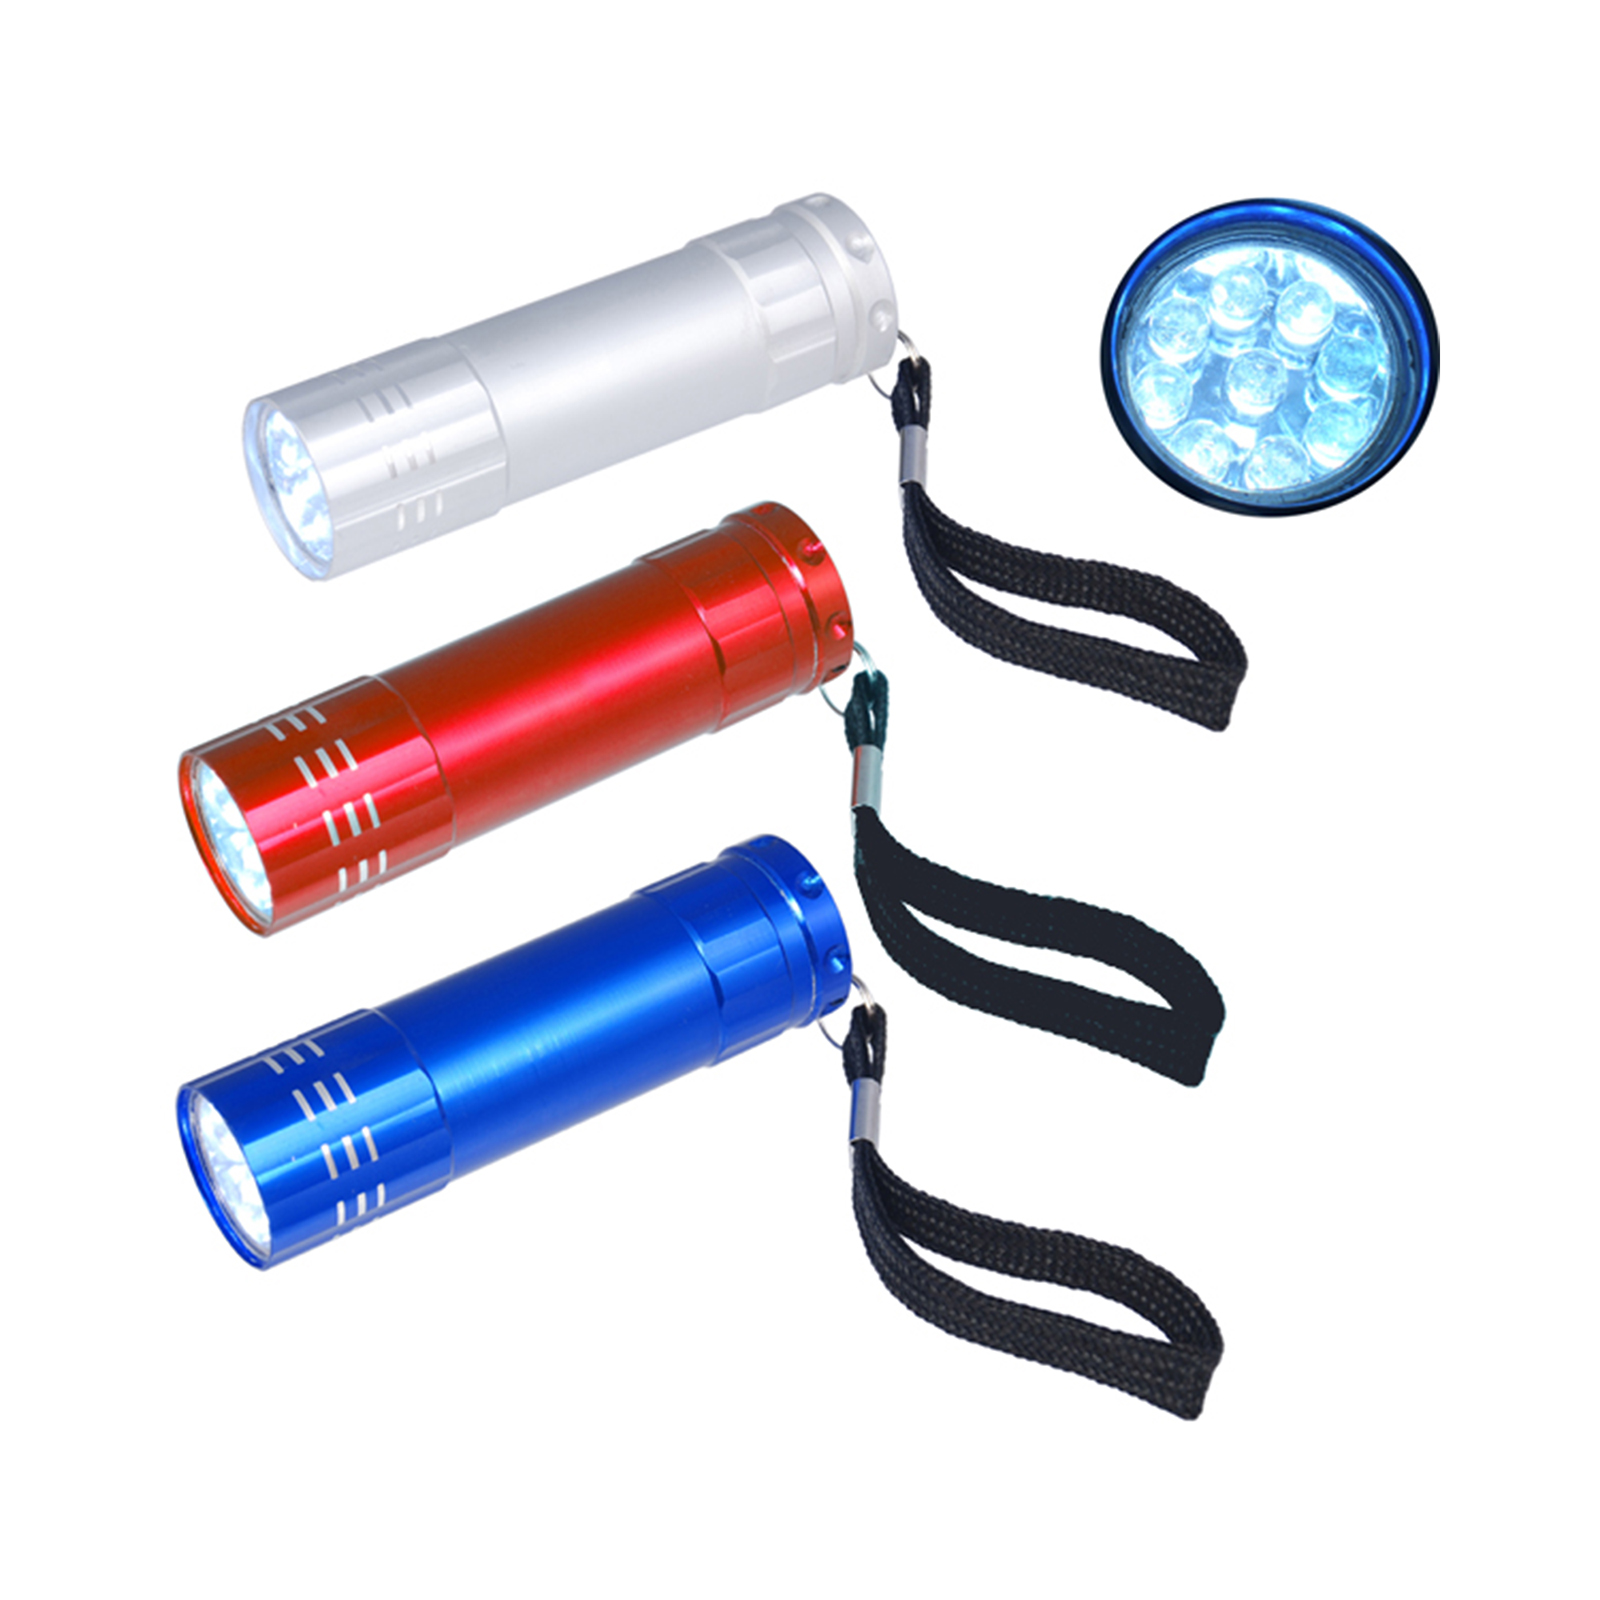 LED Torch,Potable Super Bright 9 Bulb Flashlight With Strap,Promotion Gift Cheap Giveaway